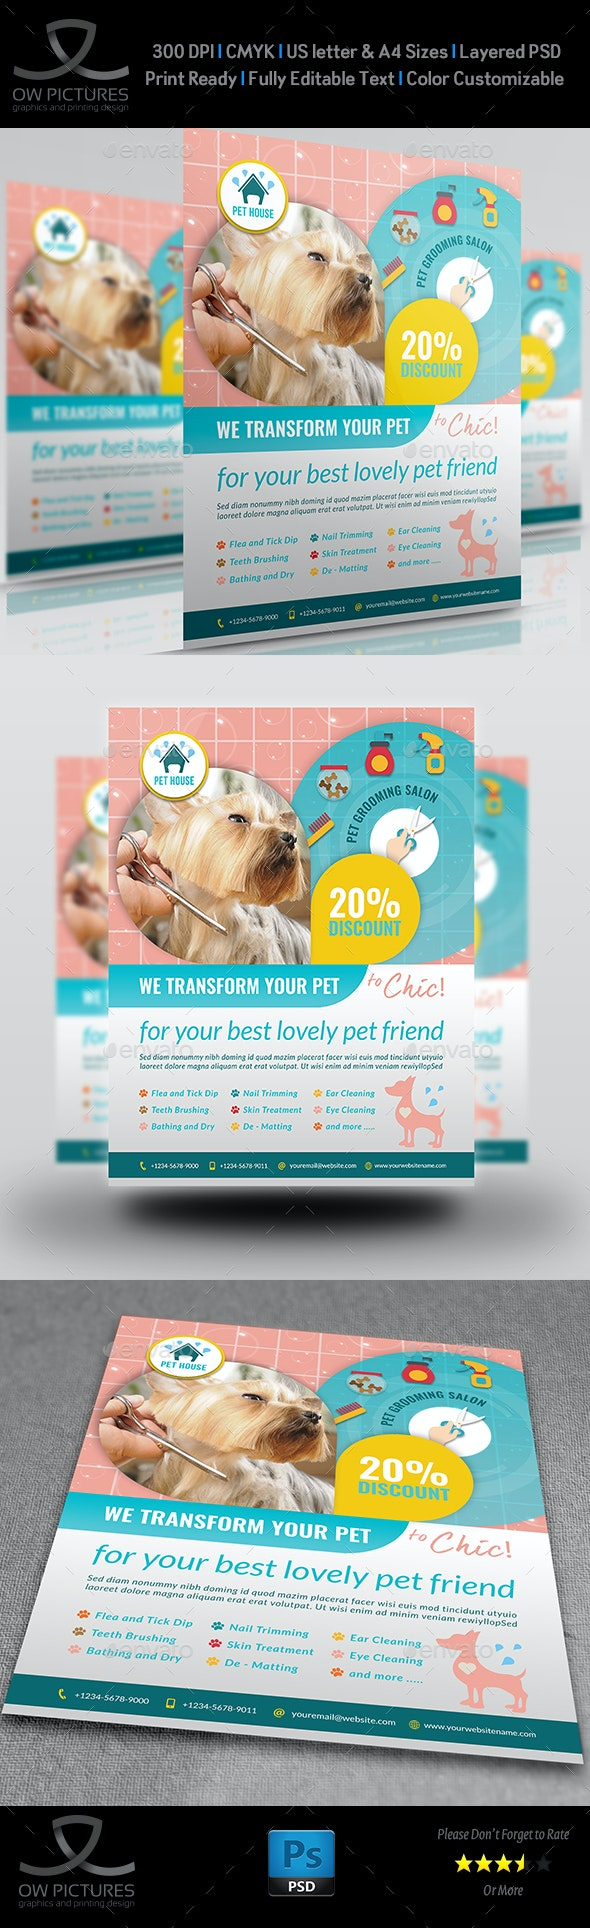 Pet Grooming Salon Flyer Template - Commerce Flyers